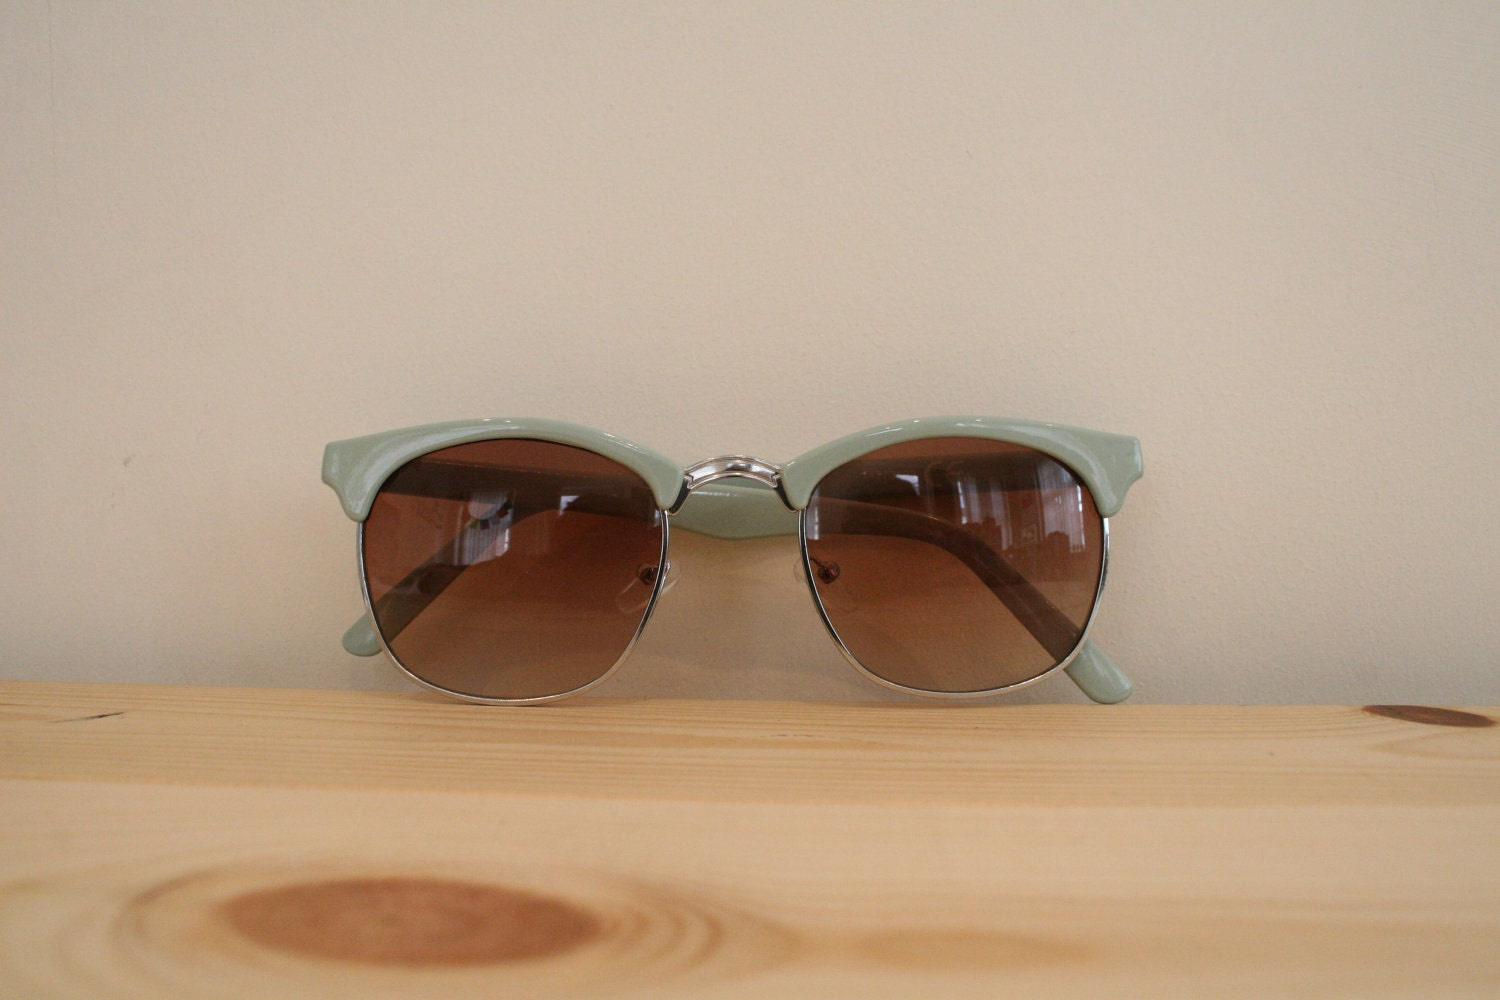 Mint Sunglasses pale blue green sun glasses frame lens cateye vintage women eyewear fashion sunnies shades geek nerd hipster 50s rockabilly